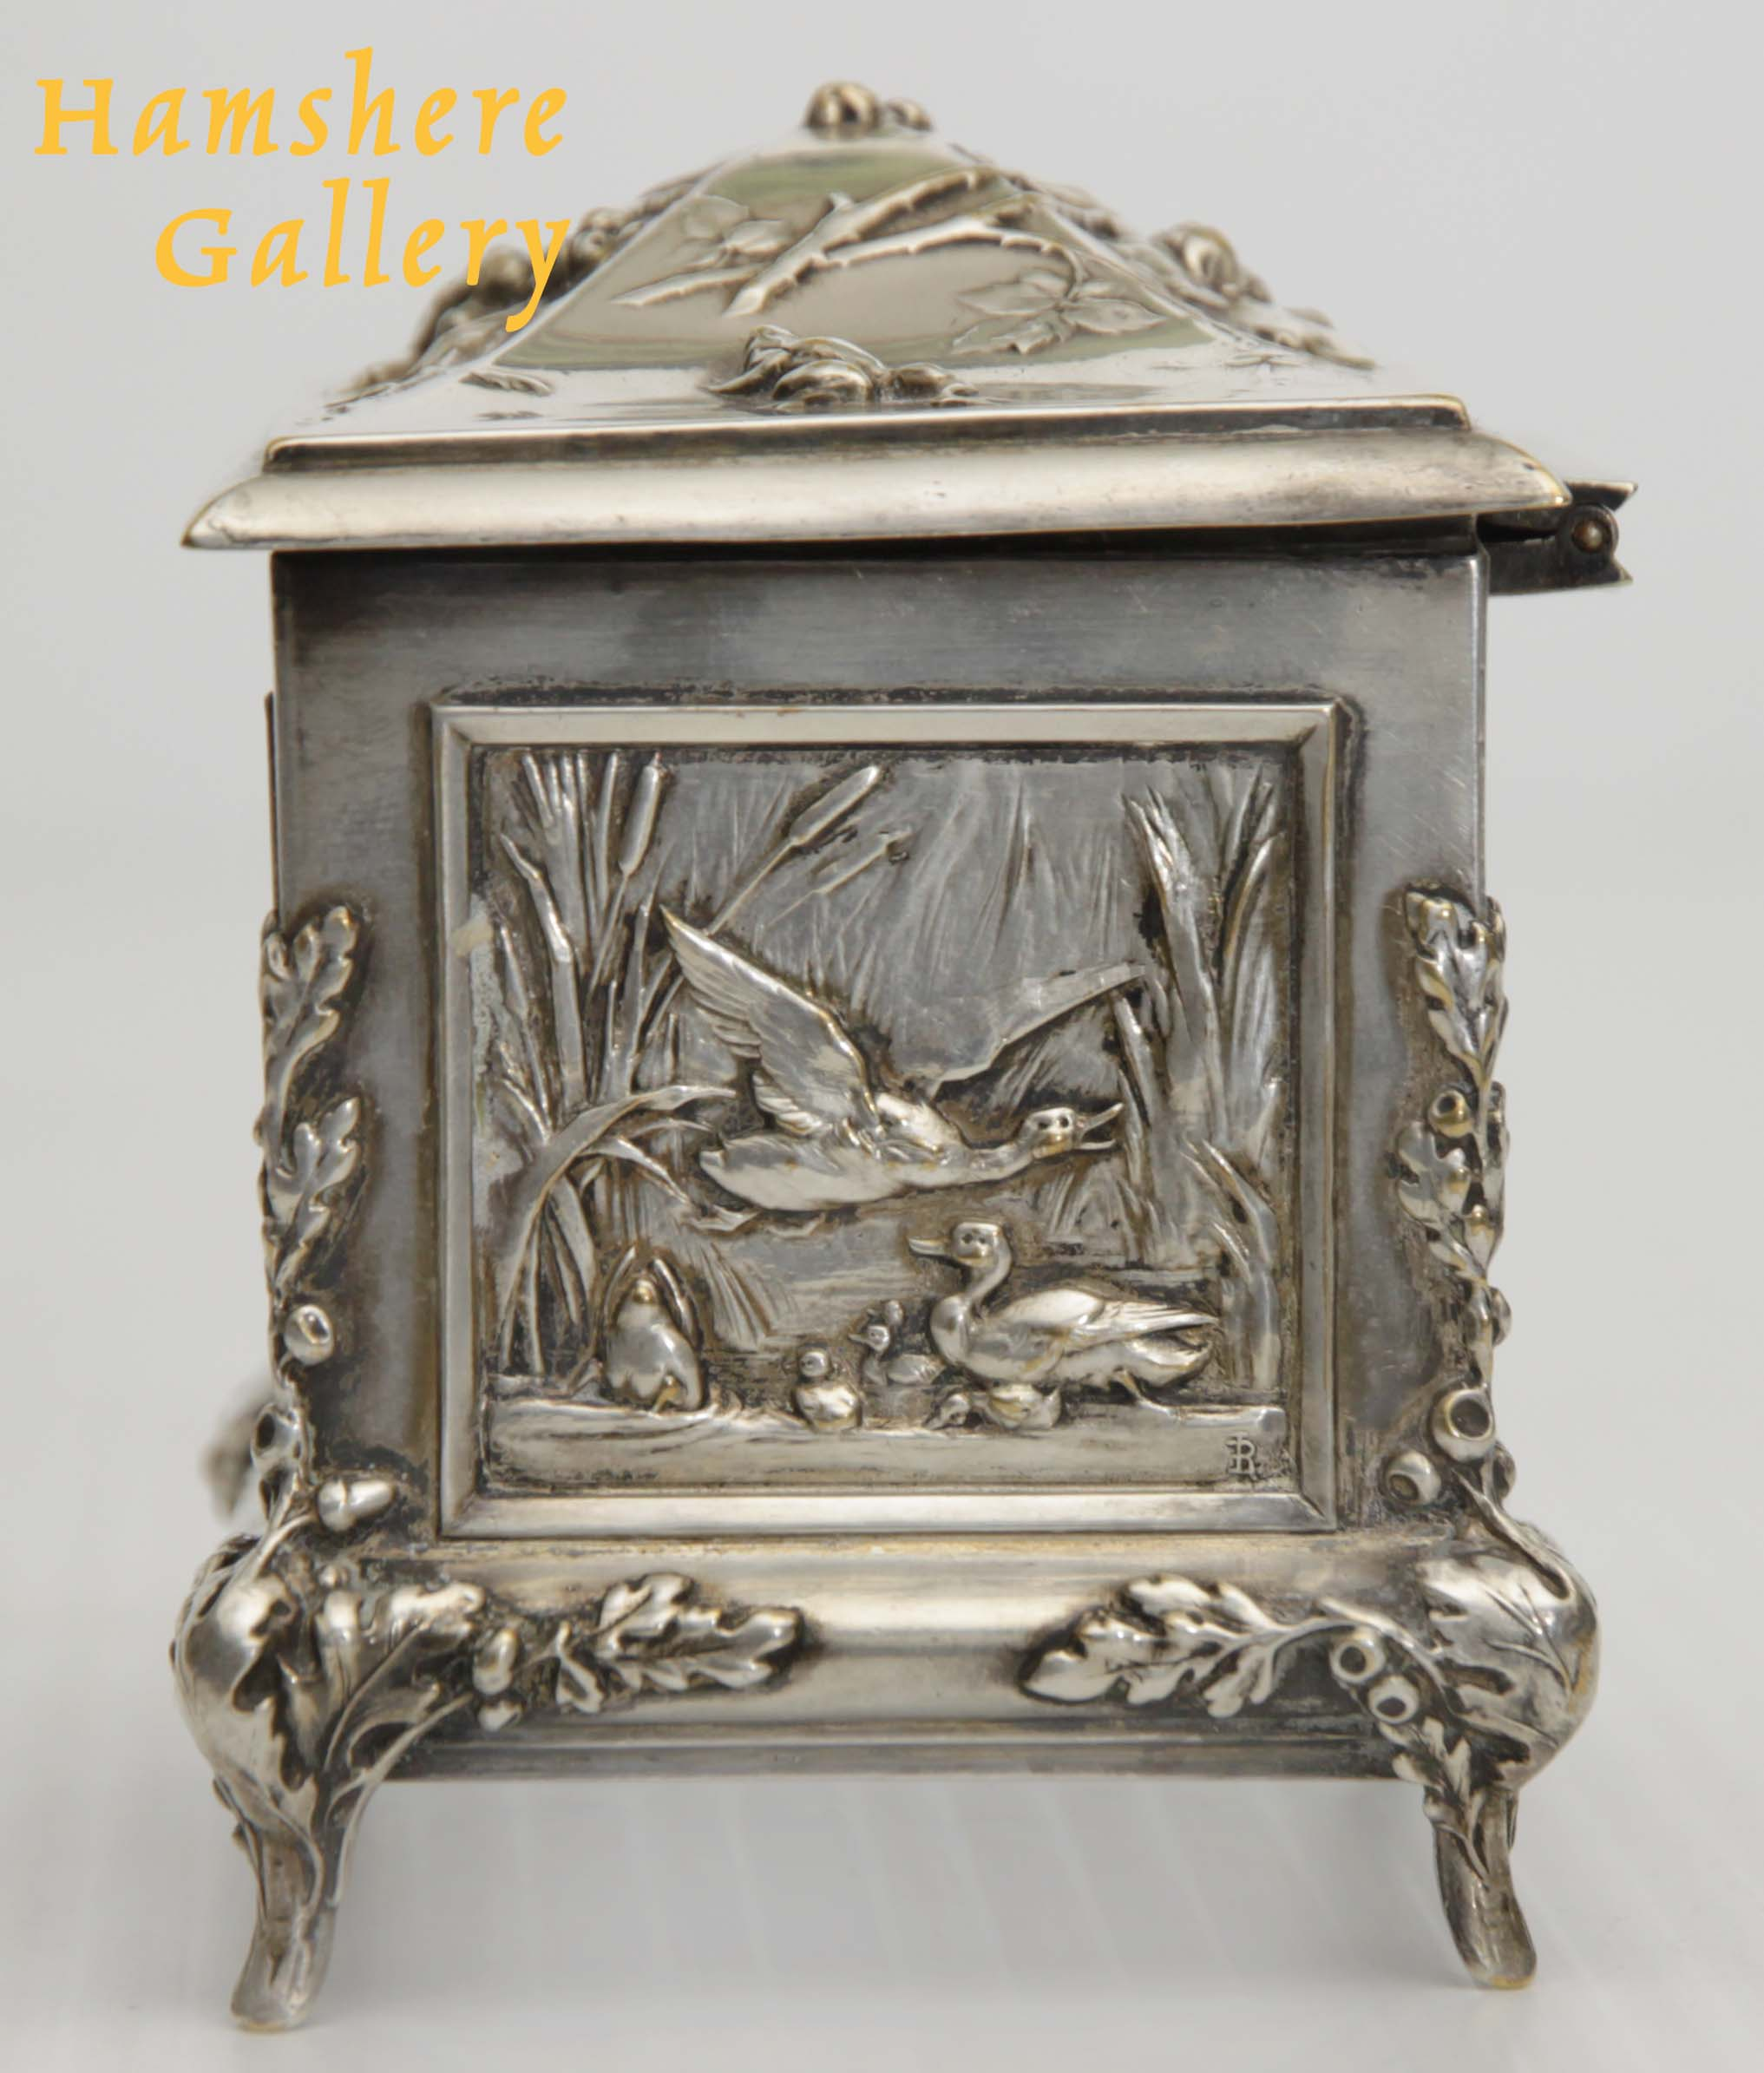 Click to see full size: A silver hunting / La Chasse jewellery box by Louis Armand Rault (French, 1847-1903)- A silver hunting / La Chasse jewellery box by Louis Armand Rault (French, 1847-1903)